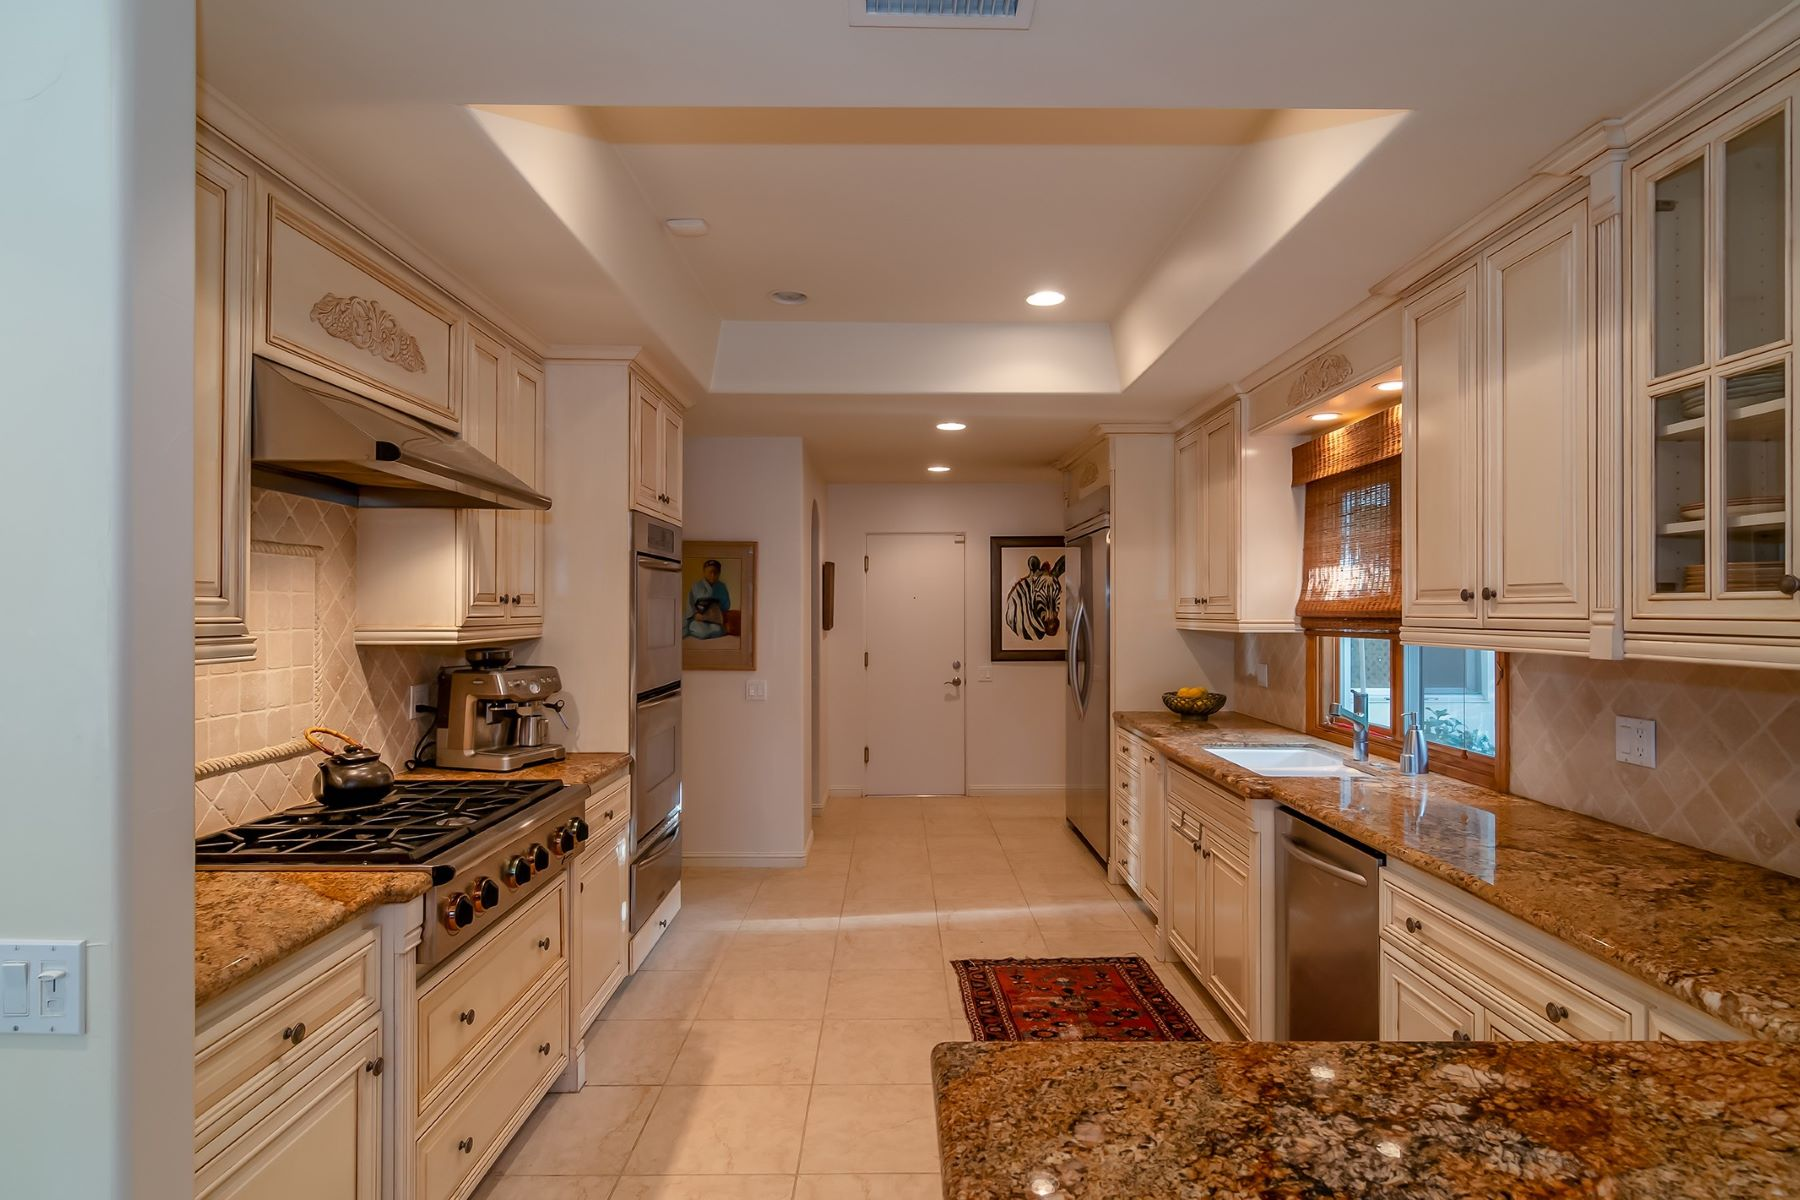 Single Family Homes for Sale at 77146 Iroquois Drive 77146 Iroquois Dr Indian Wells, California 92210 United States